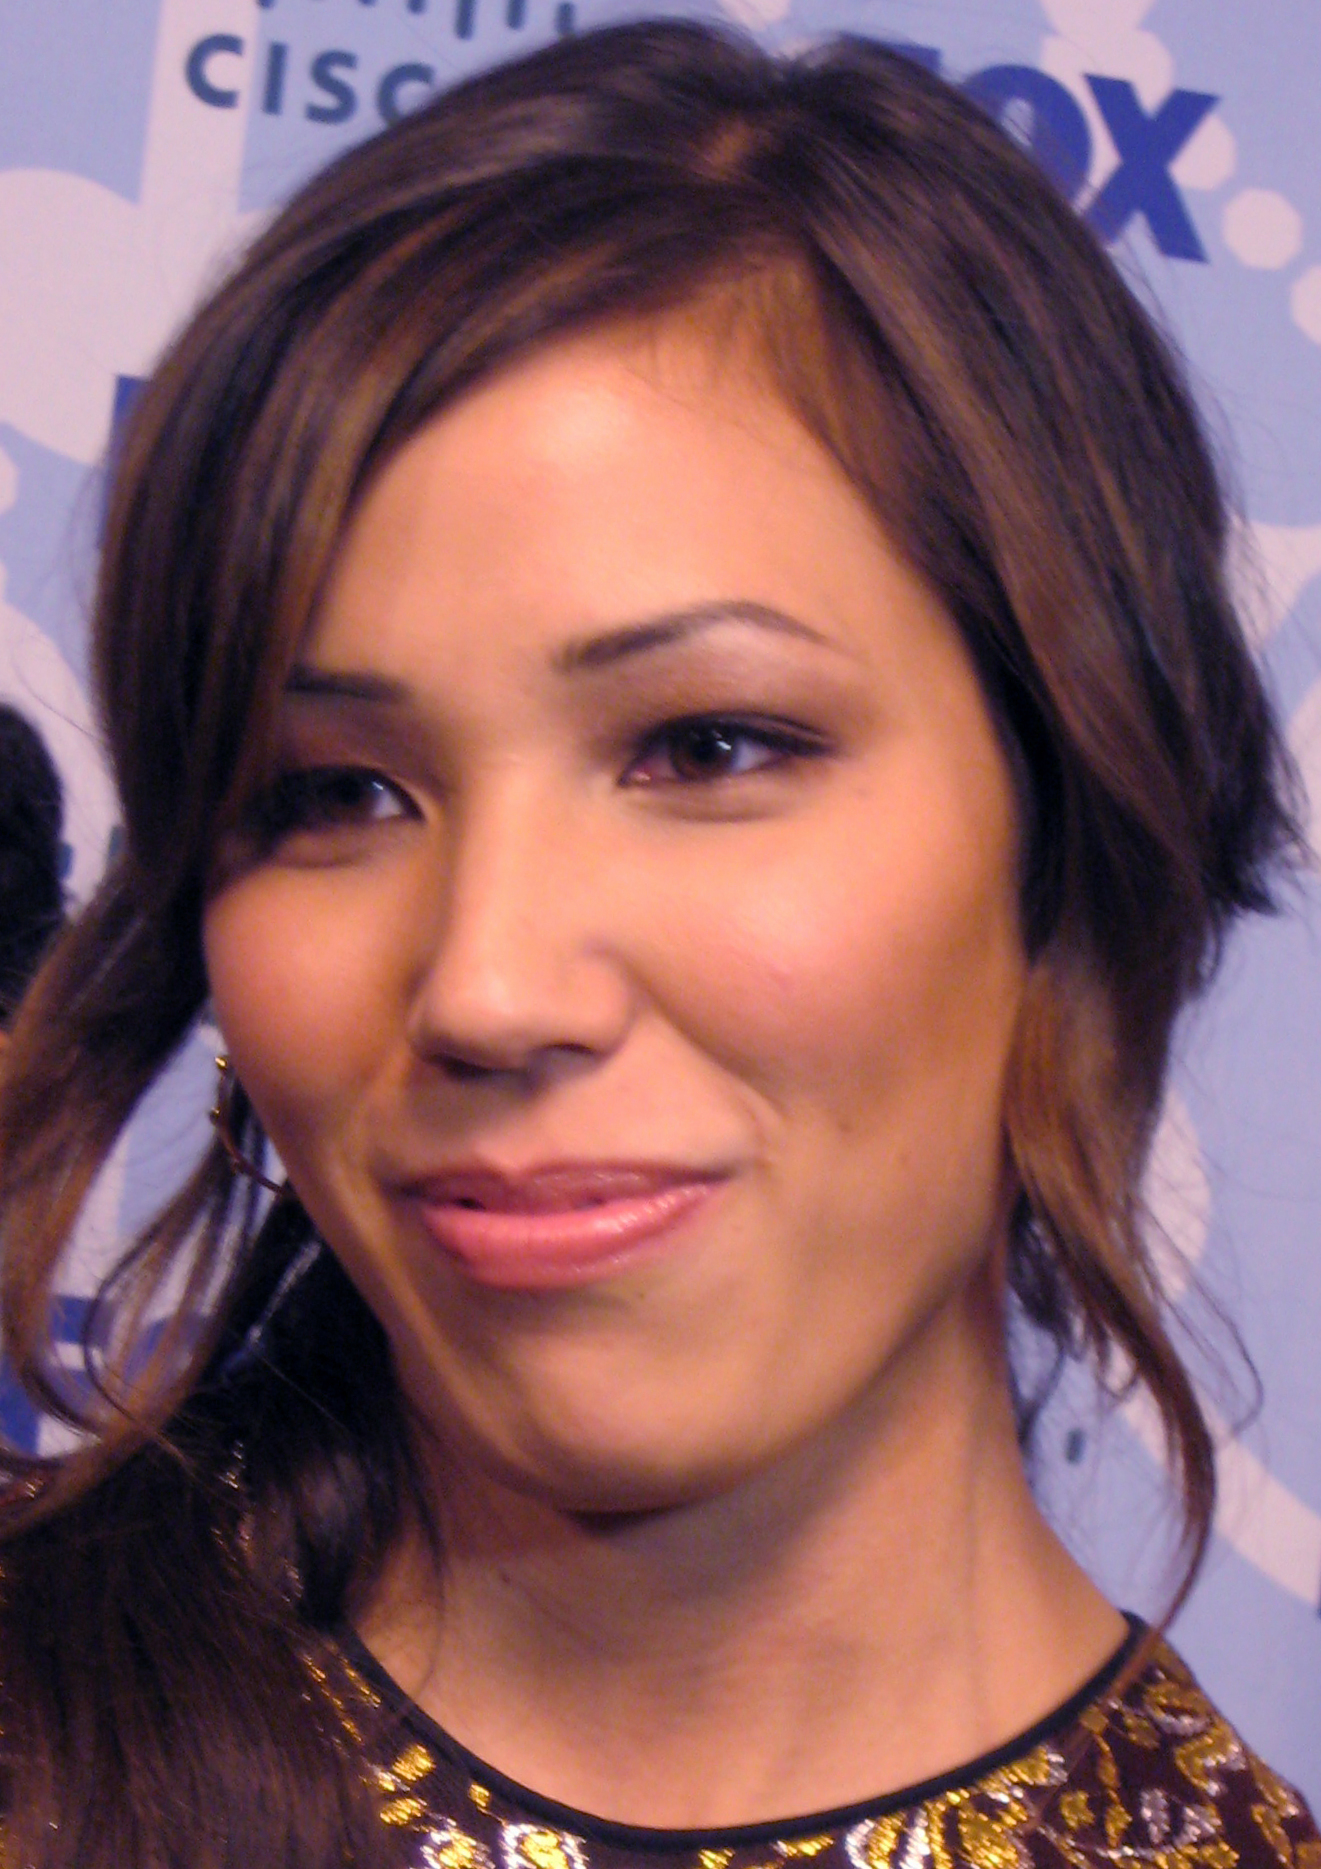 The 40-year old daughter of father Fran Conlin and mother Denise Conlin Michaela Conlin in 2018 photo. Michaela Conlin earned a  million dollar salary - leaving the net worth at 4 million in 2018